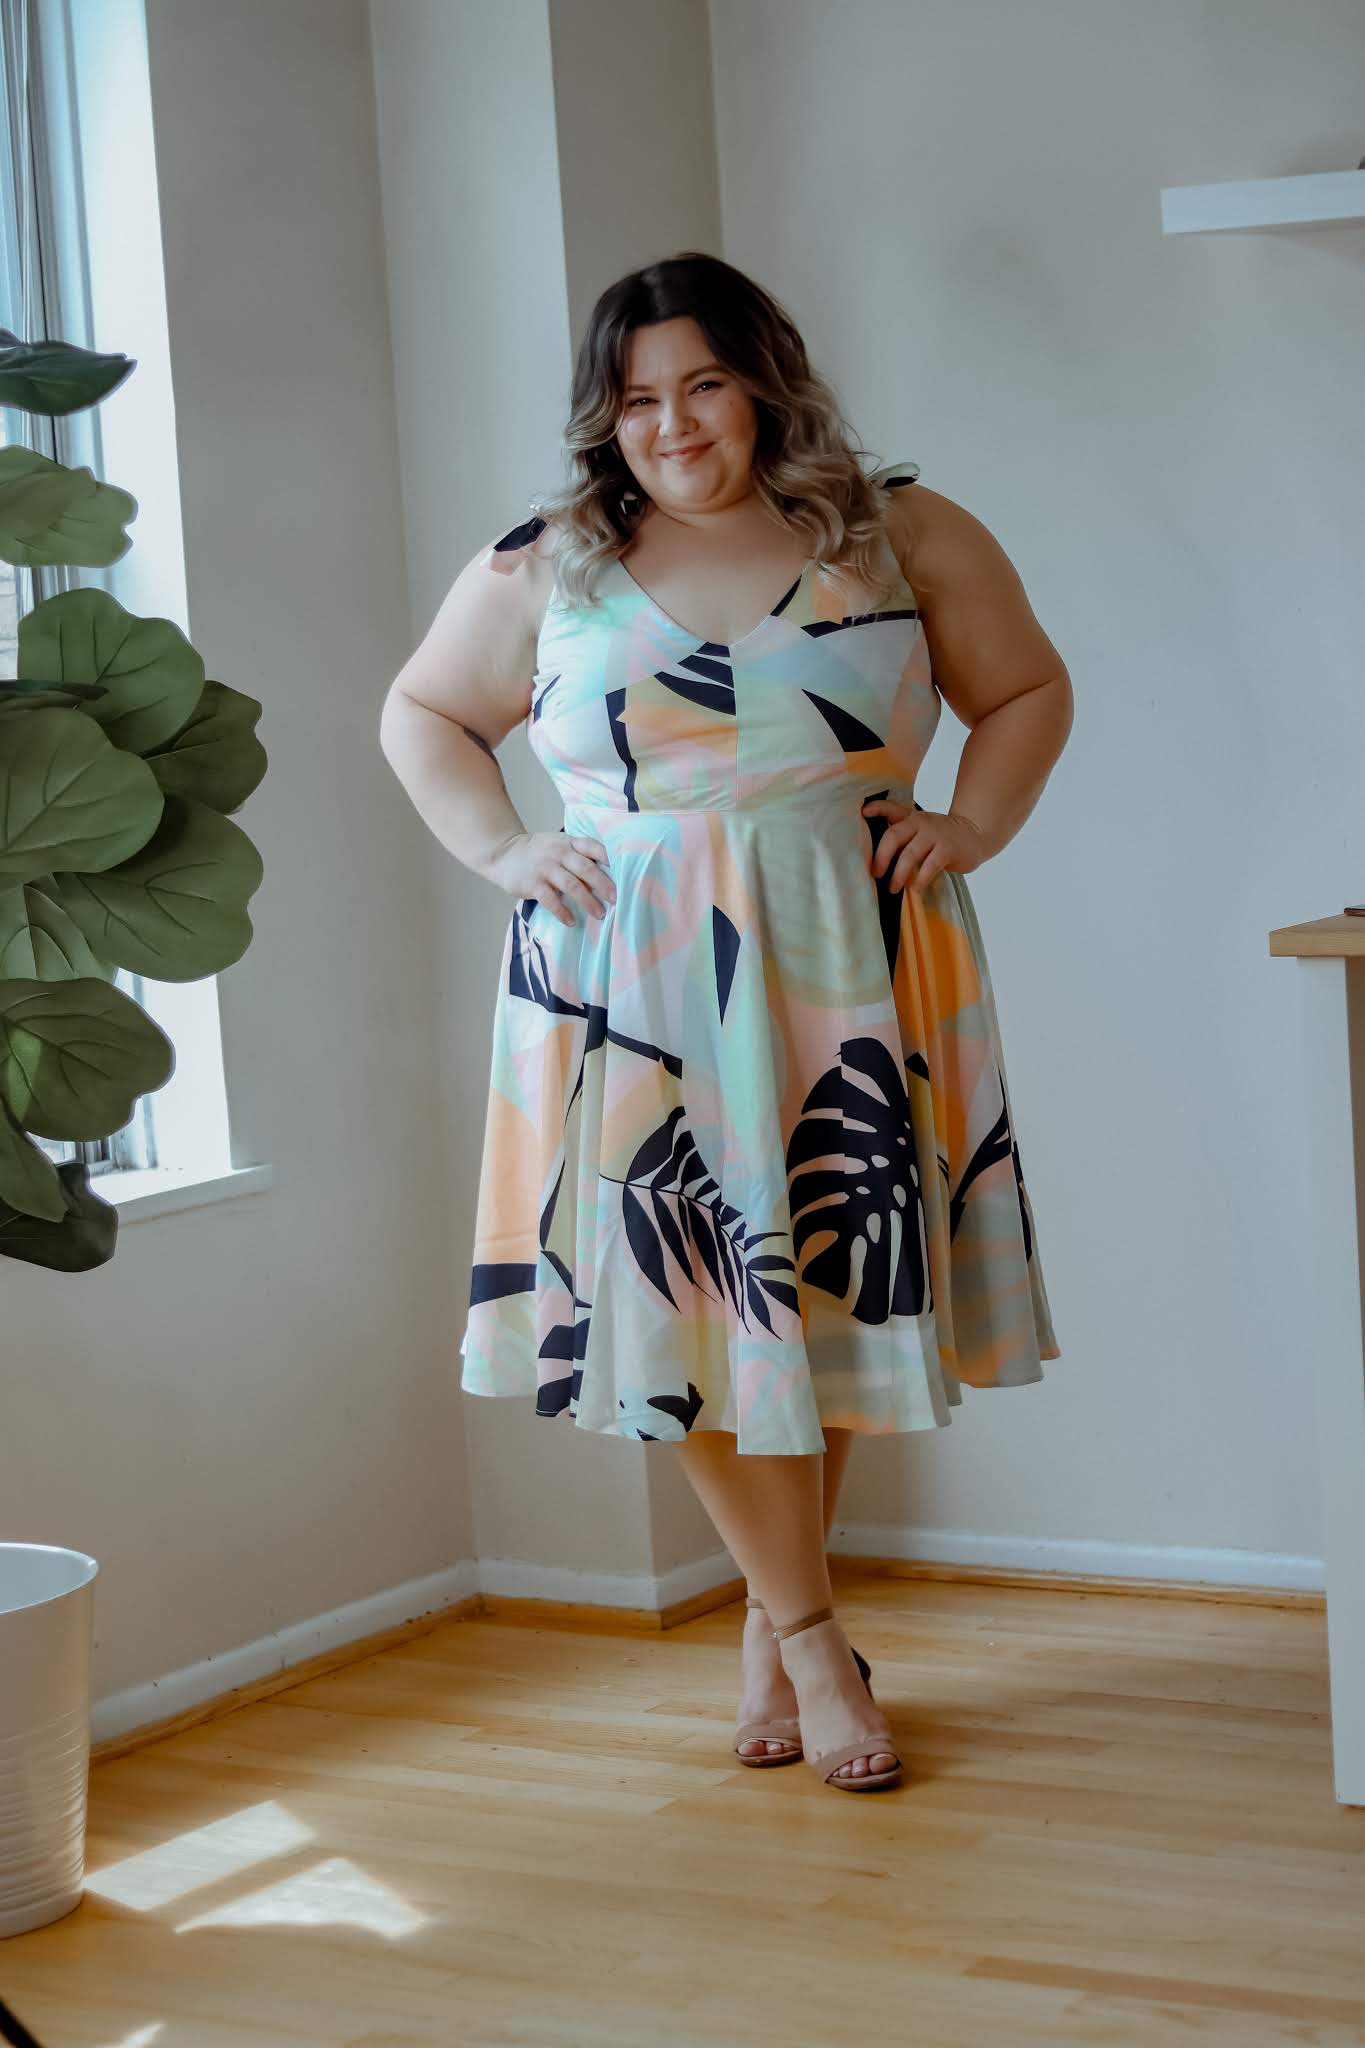 Chicago Plus Size Petite Fashion Blogger, influencer, and model Natalie in the City Craig reviews Hutch X Modcloth